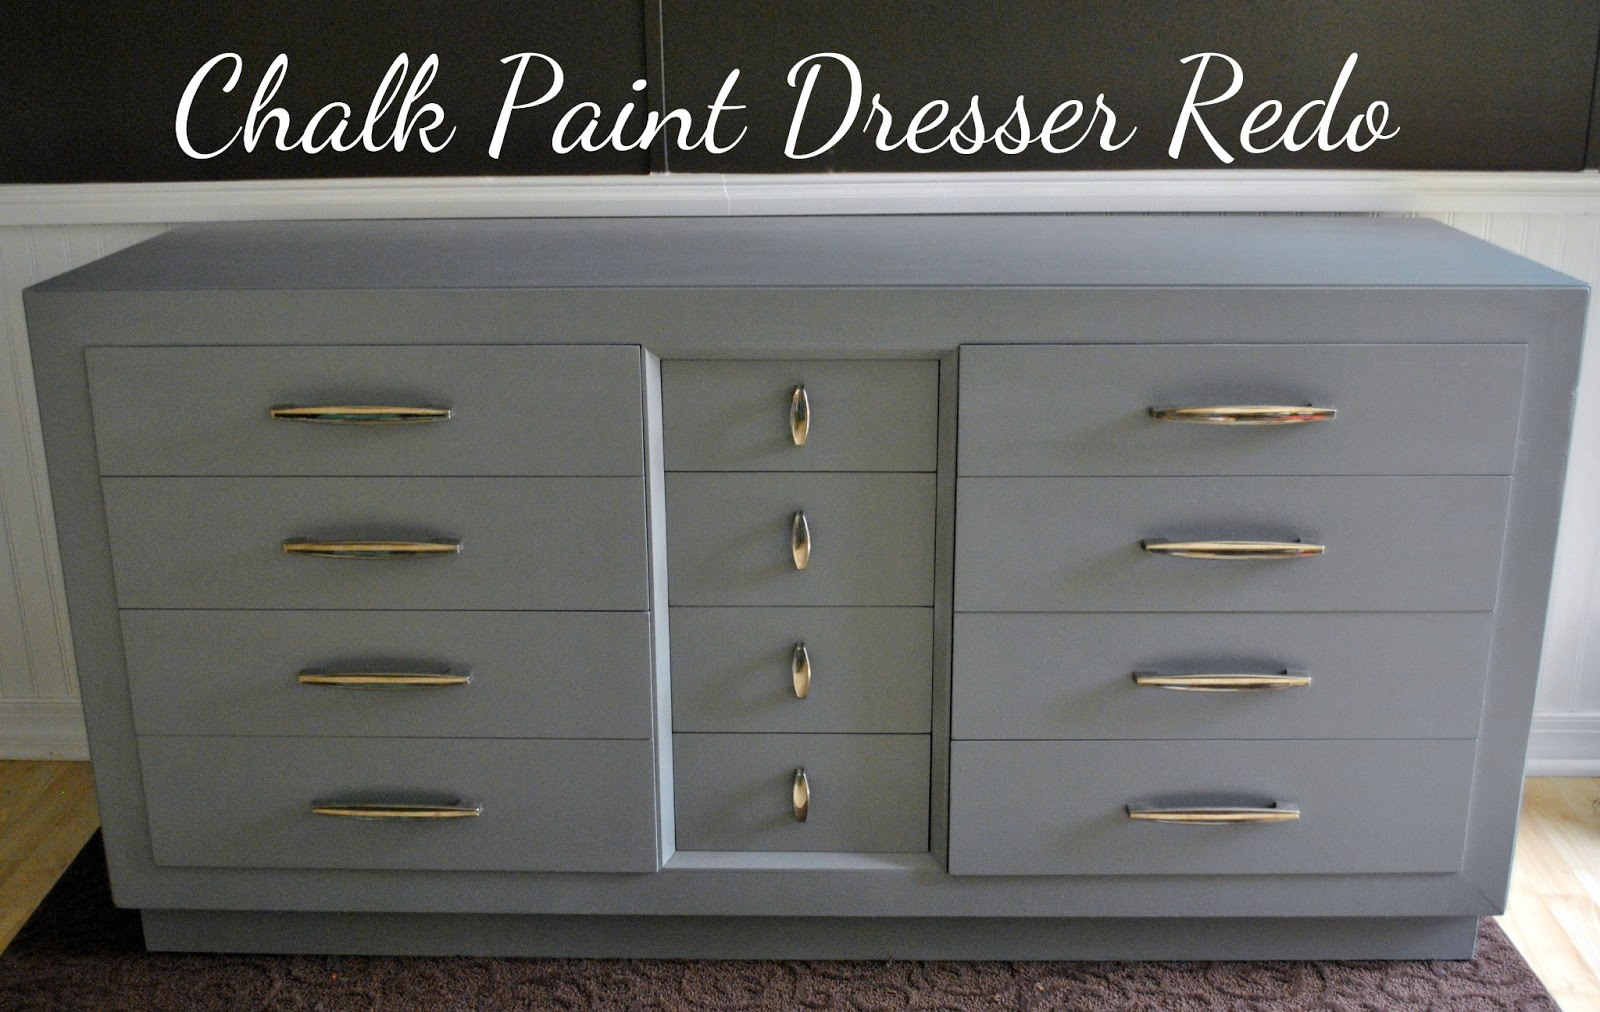 Chalk Paint Chairs Life With 4 Boys Diy Chalk Paint Dresser Redo